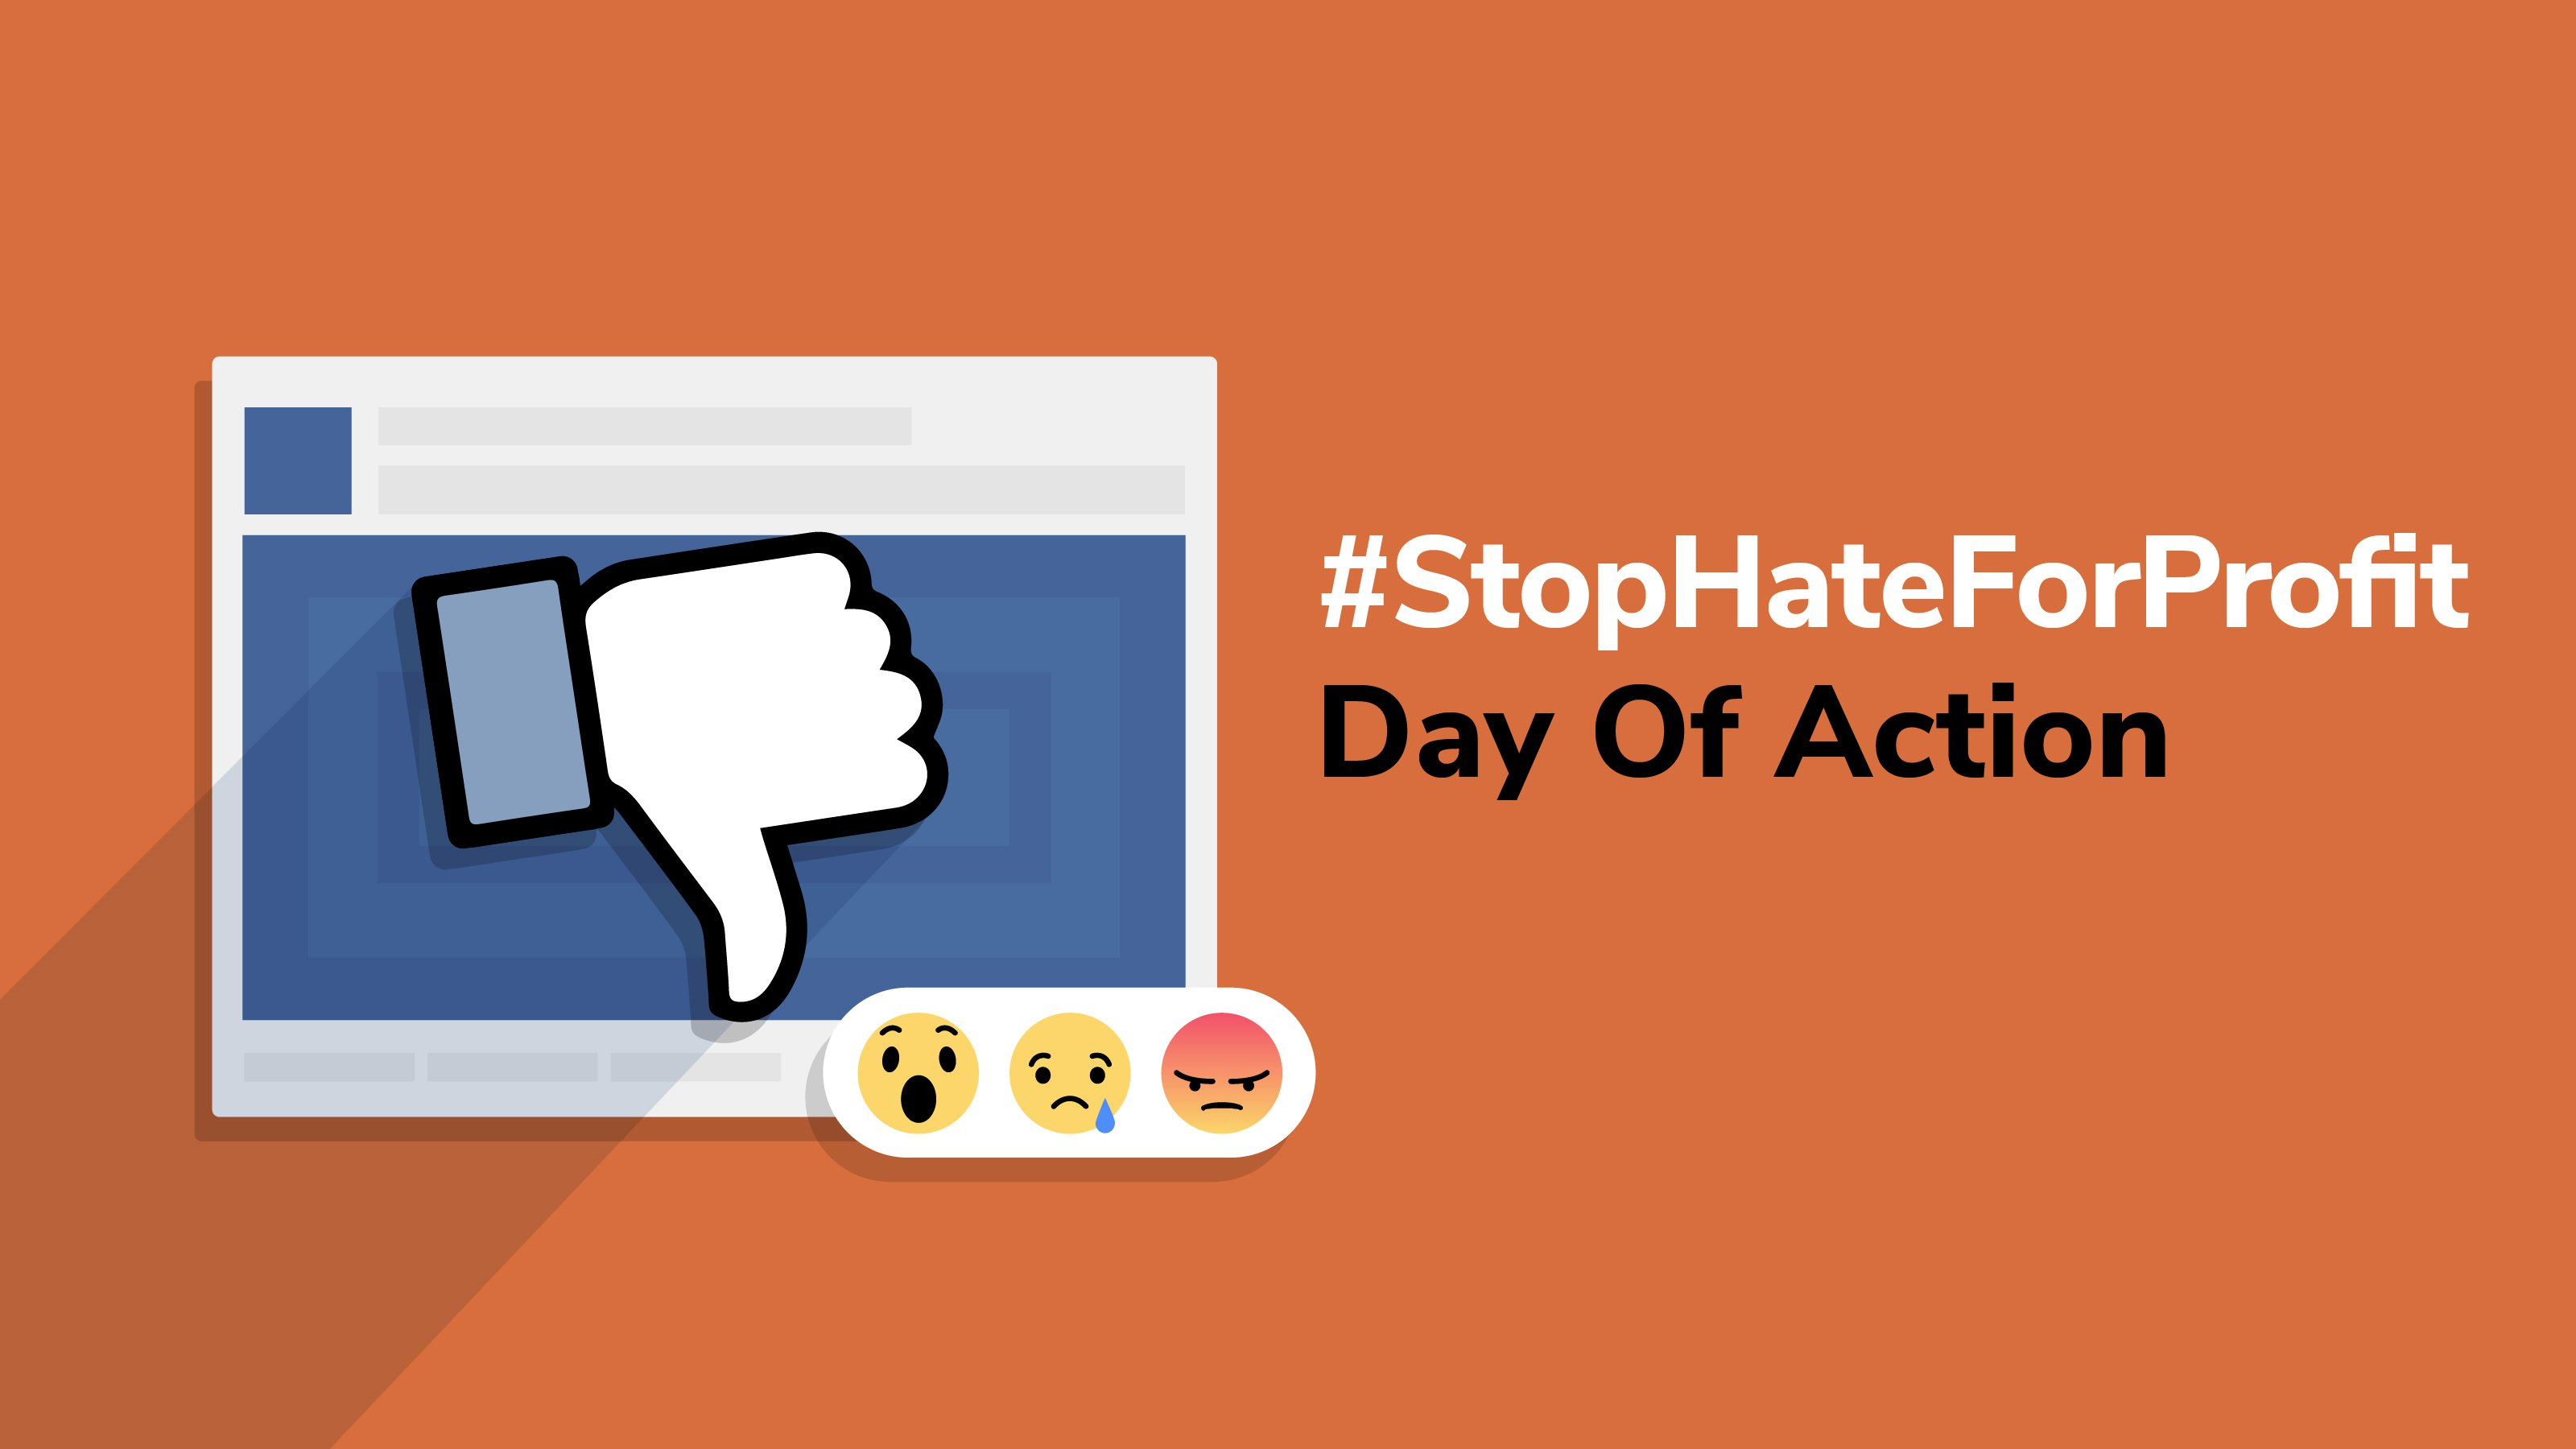 Join the global day of action and tell Zuckerberg and Facebook to be accountable to people and not profits